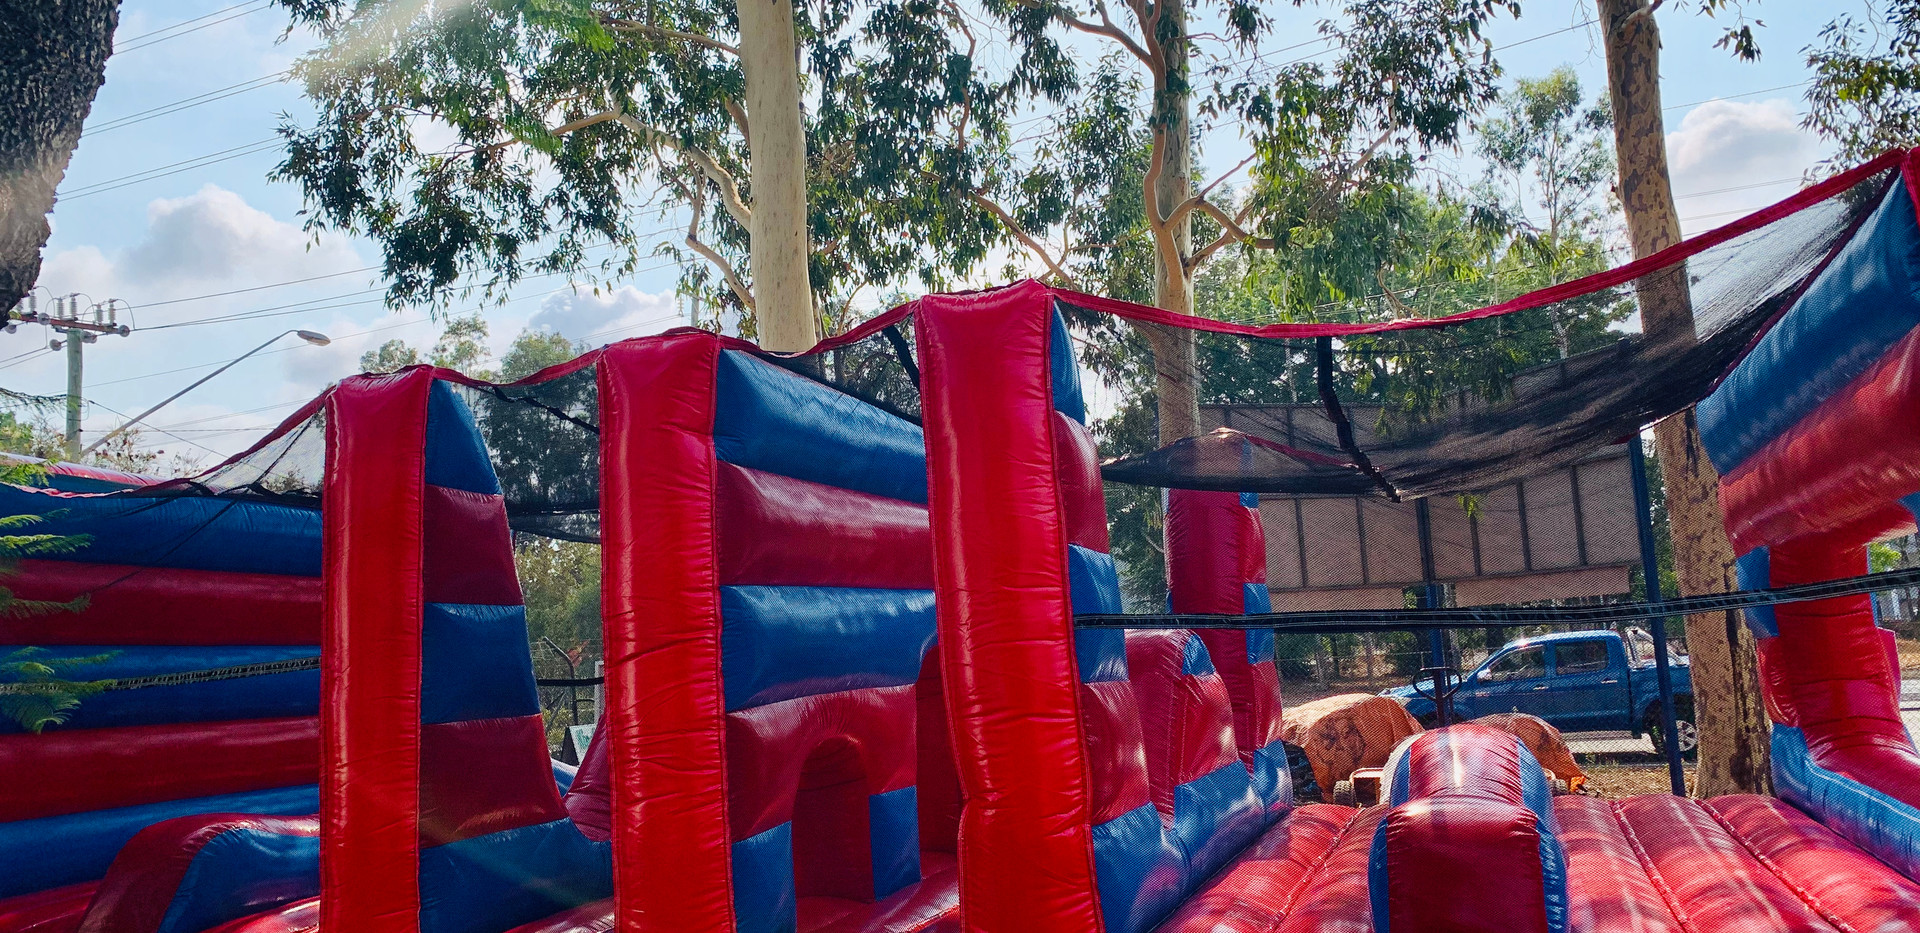 inflatable obstacles.jpg